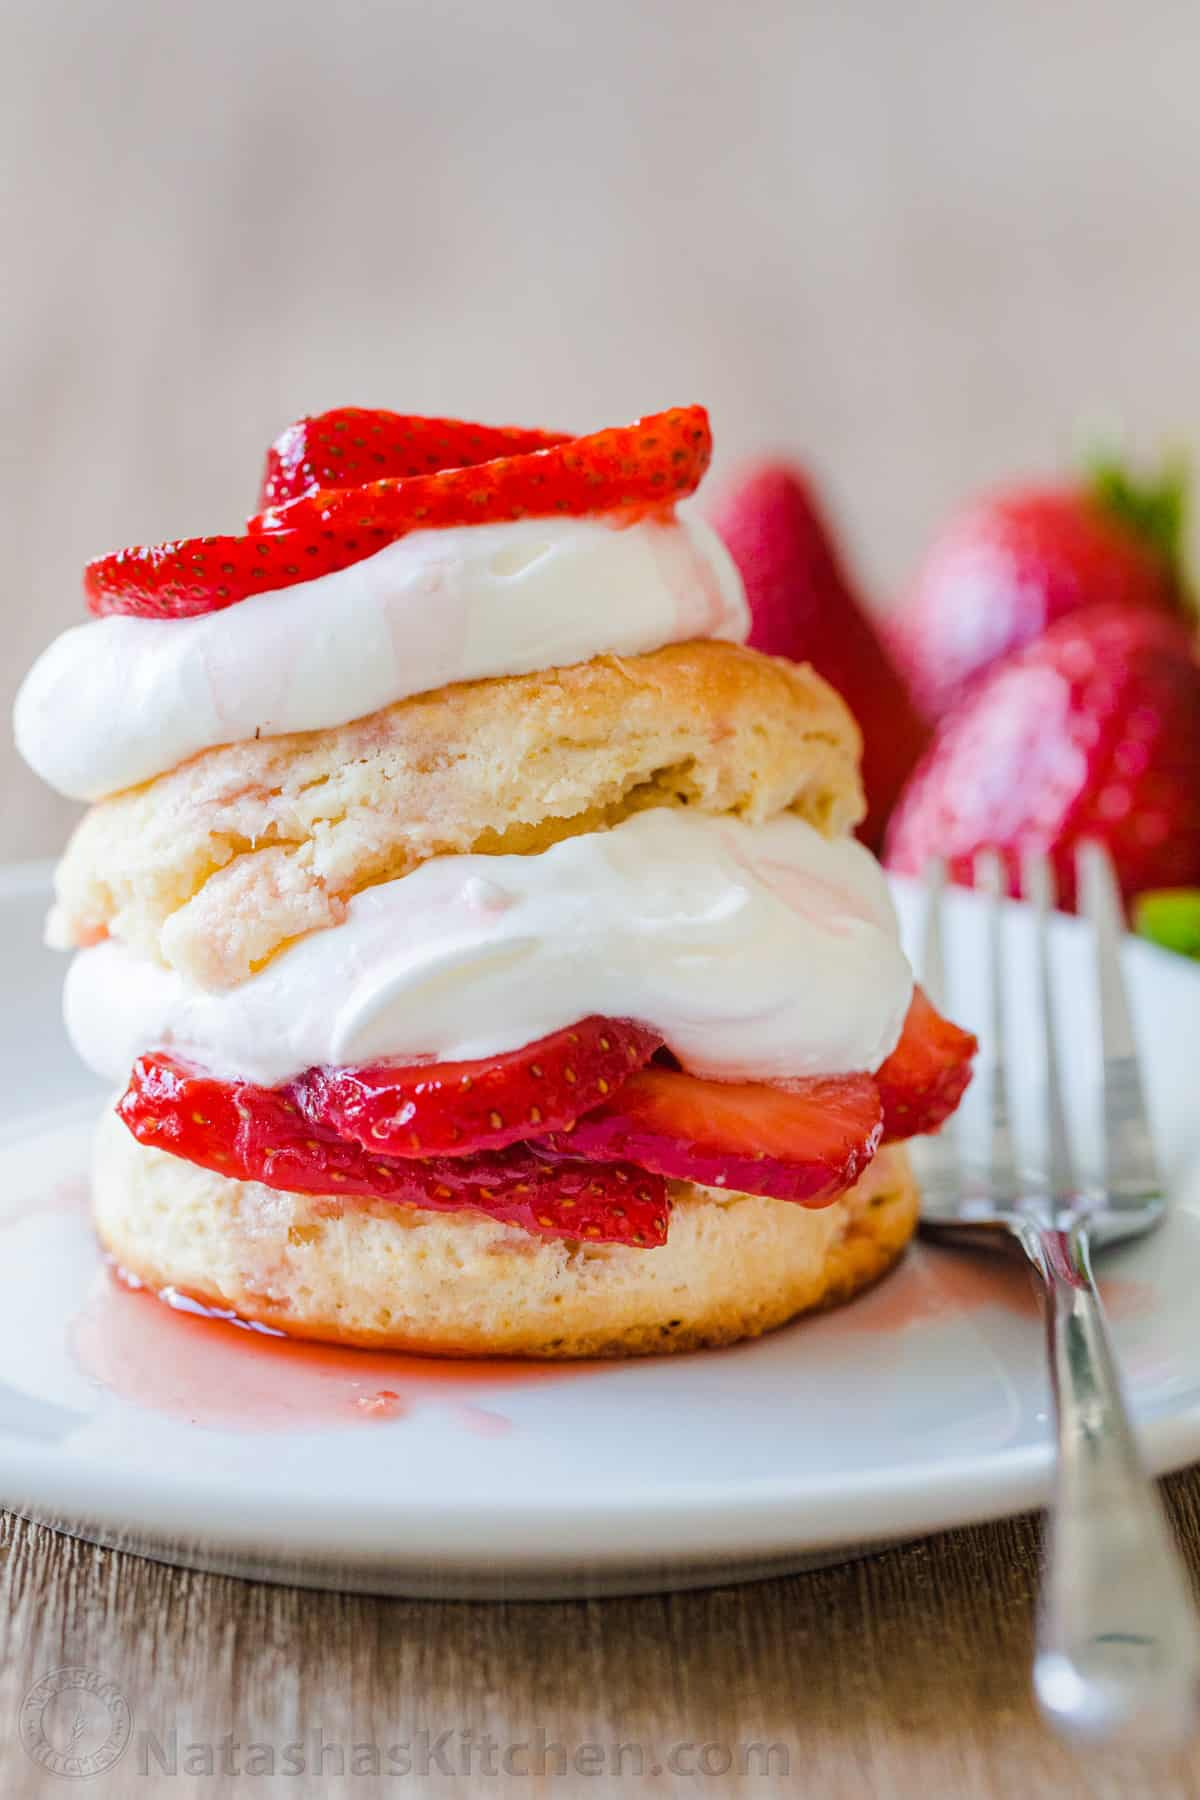 Strawberry Shortcake Recipe Video Natashaskitchen Com